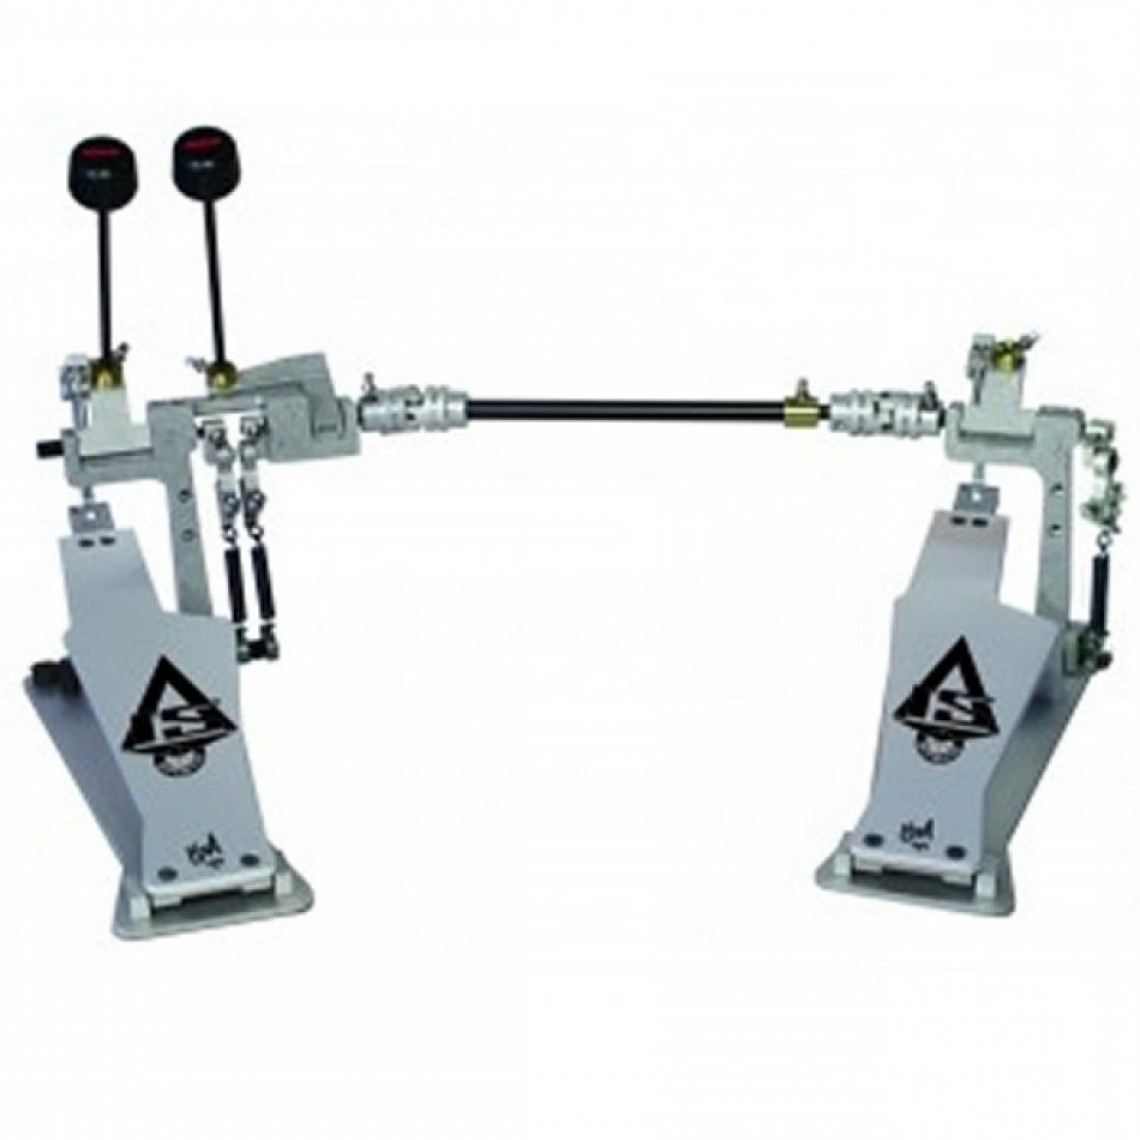 Vector Bass Drum Pedal: Axis Percussion Sabre A Double Bass Drum Pedal Microtune System Demo